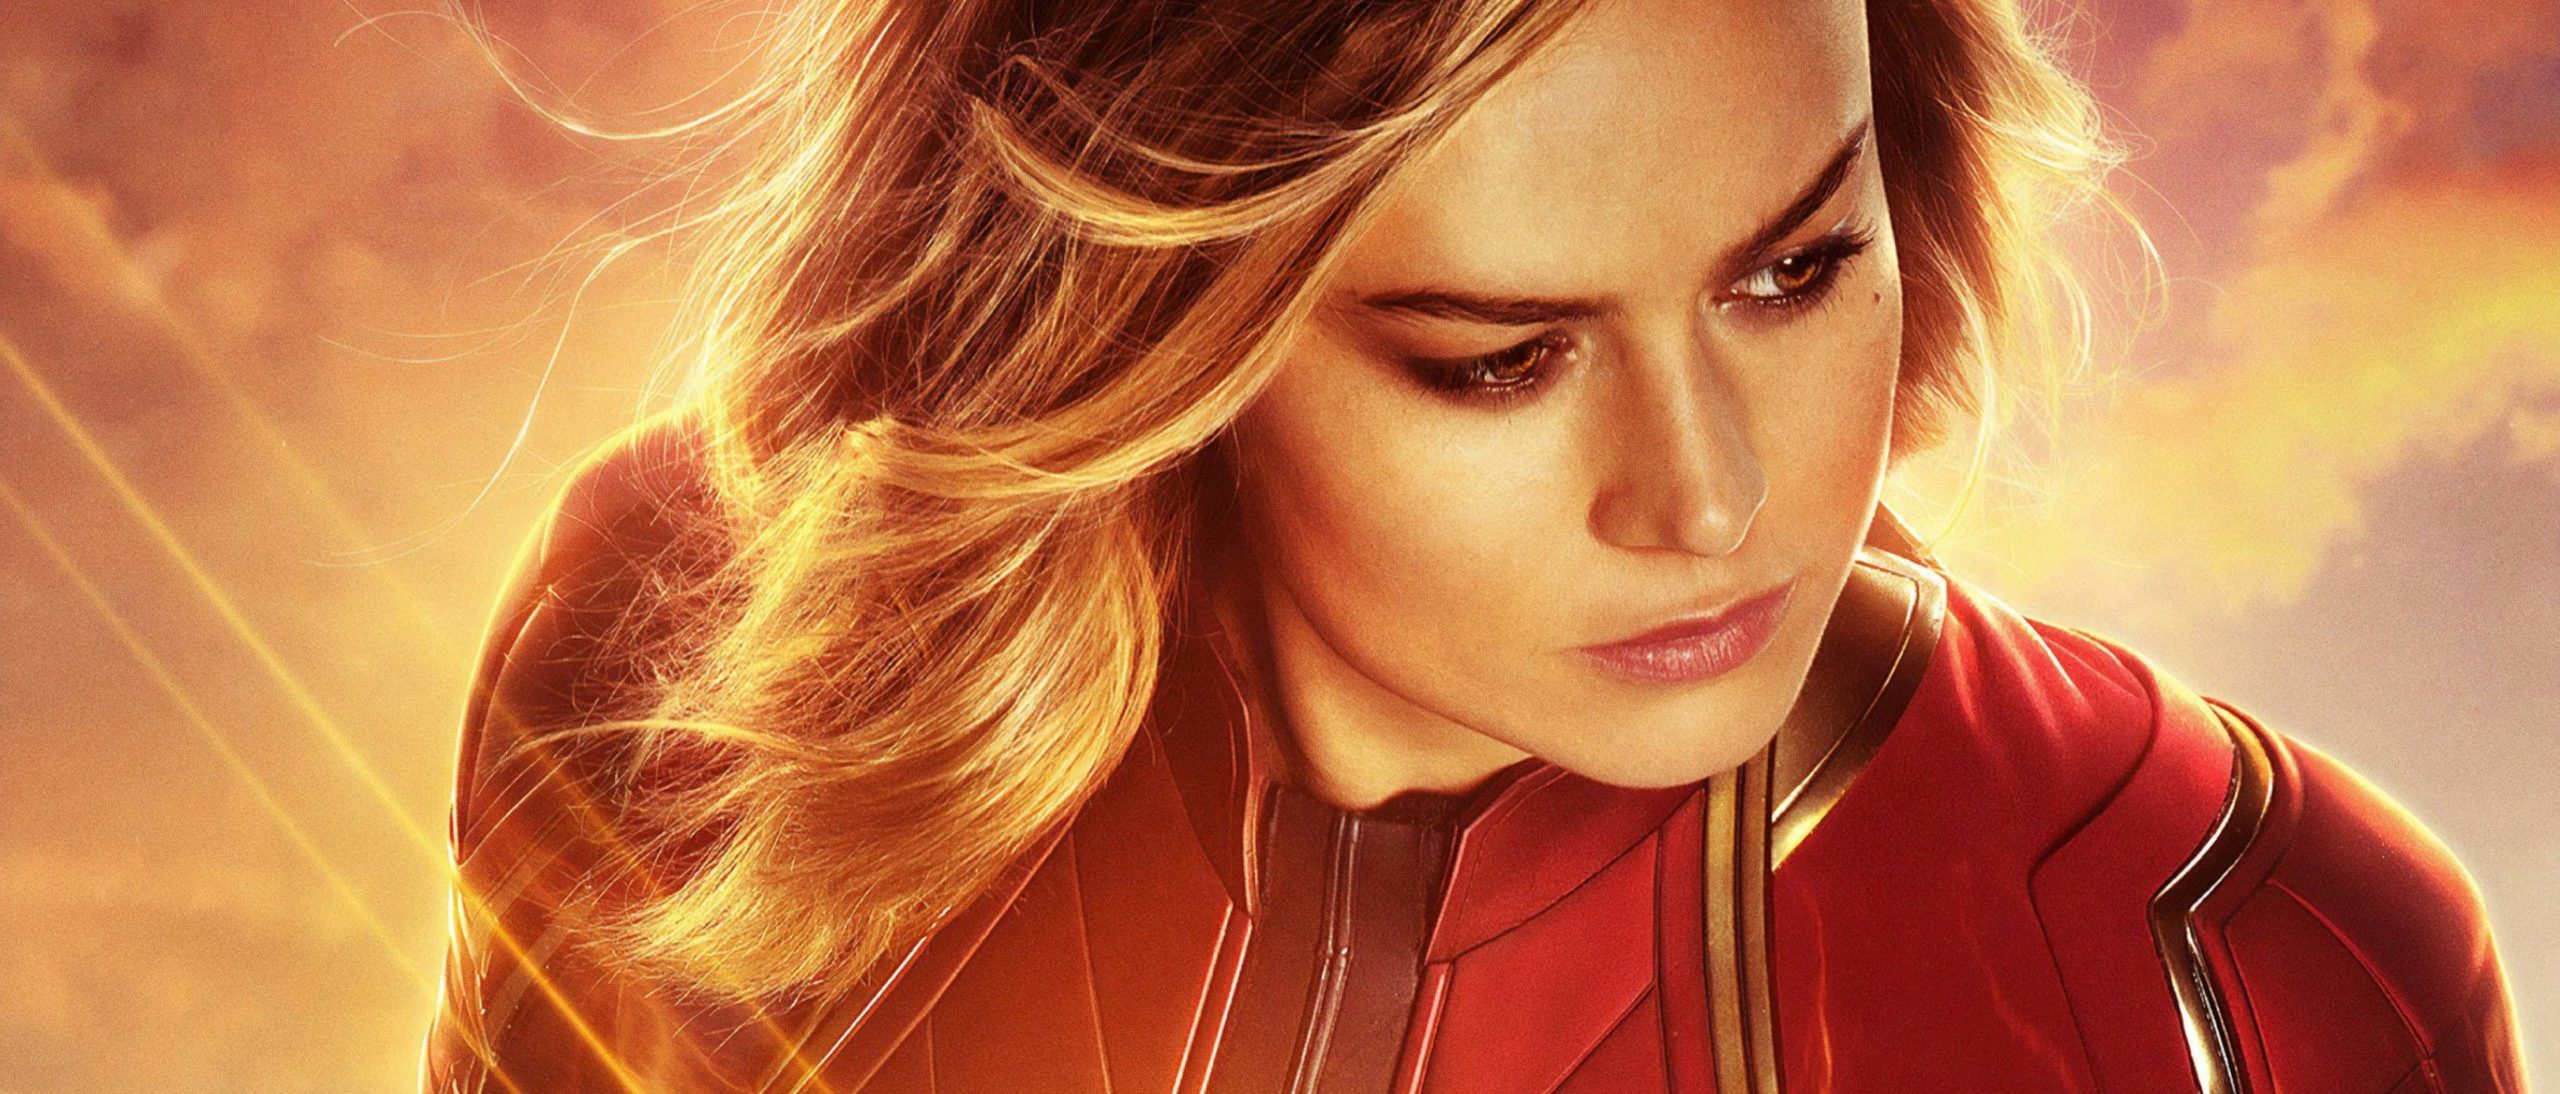 Captain Marvel 2 MCU Brie Larson